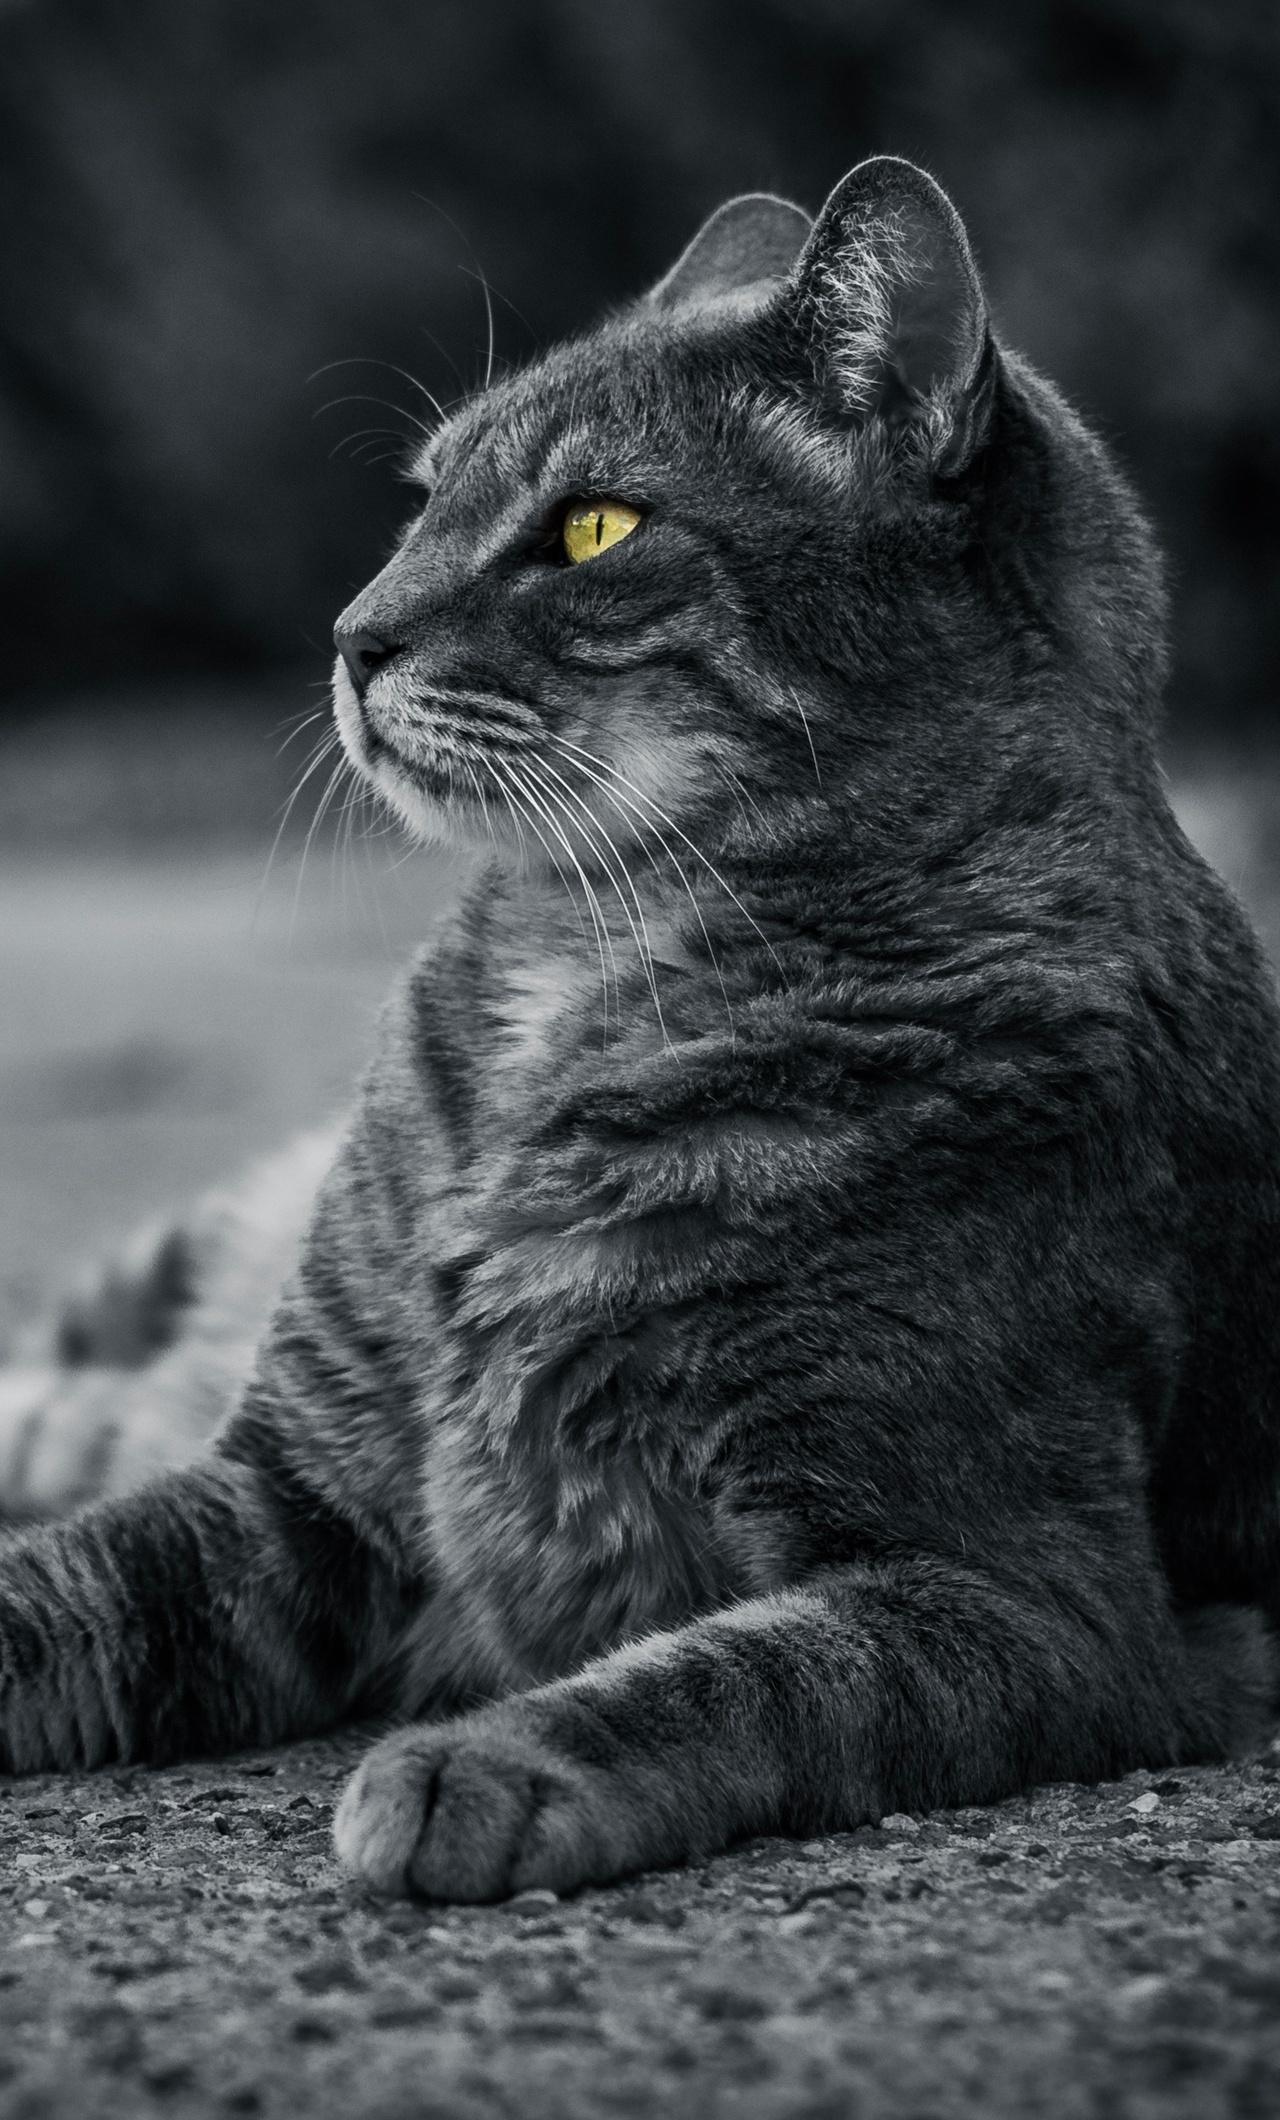 1280x2120 Cat Monochrome 4k Iphone 6 Hd 4k Wallpapers Images Backgrounds Photos And Pictures